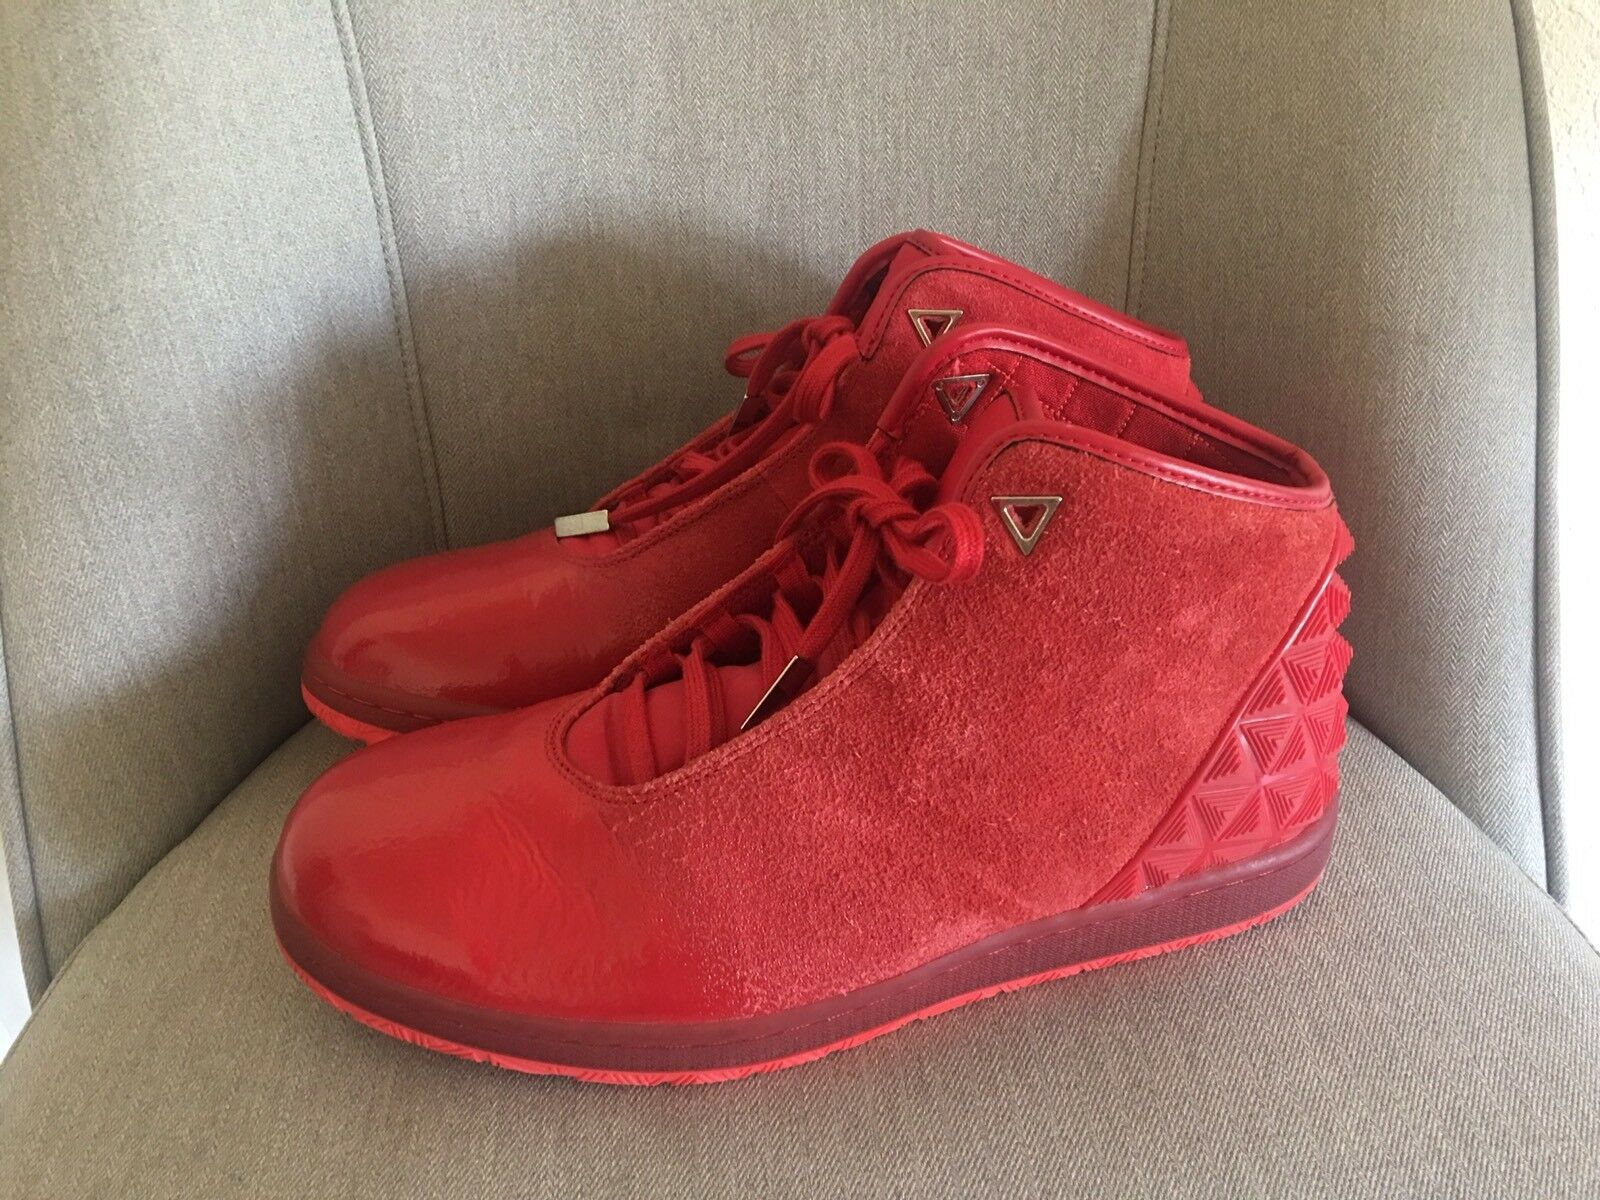 Nike Air Jordan 14 Retro Tgold Men's Red Suede Patent Leather Size 11 705076-606